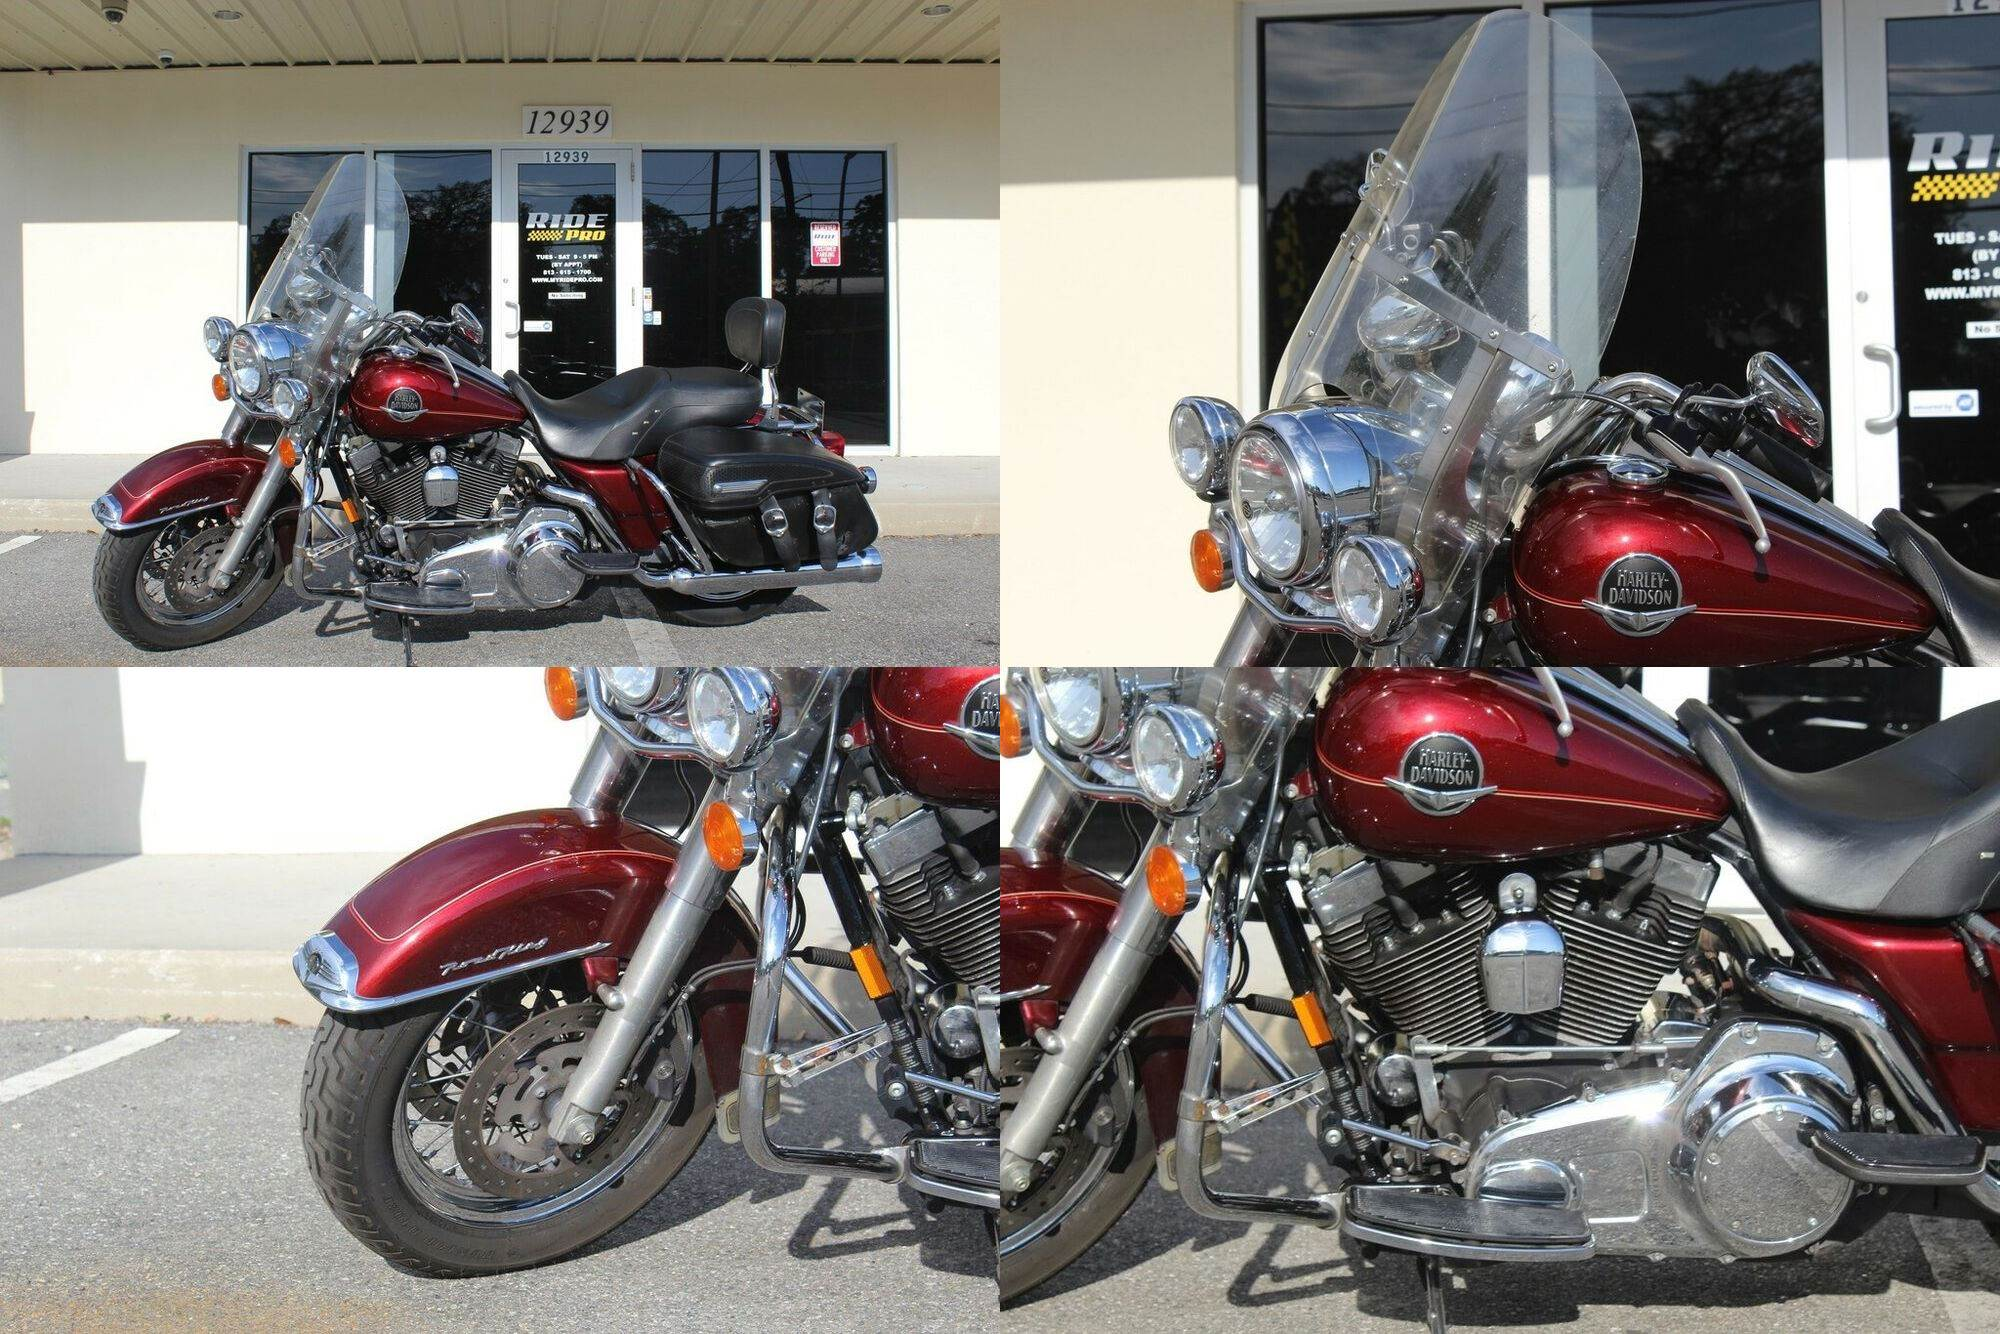 2008 Harley Davidson Touring  for sale craigslist